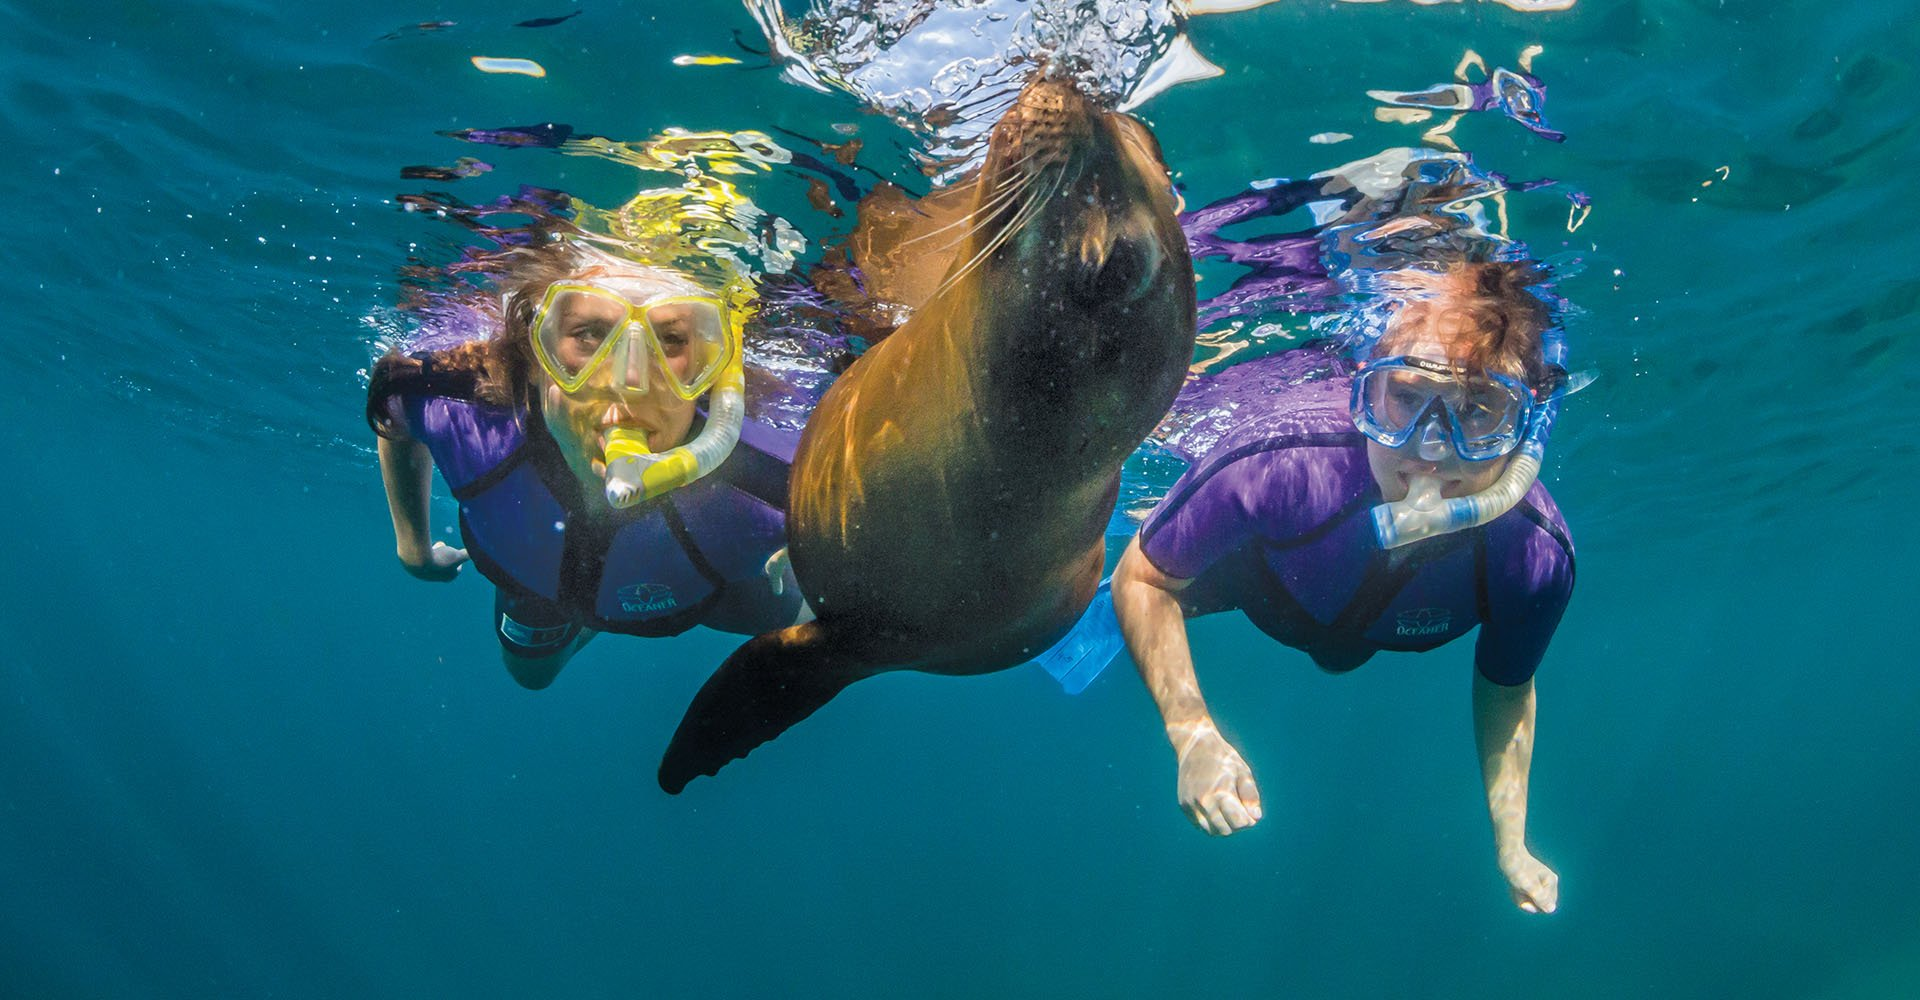 Small Ship Voyages Book Luxury Cruises with Lindblad National Geographic Cruises - Experience Wildlife